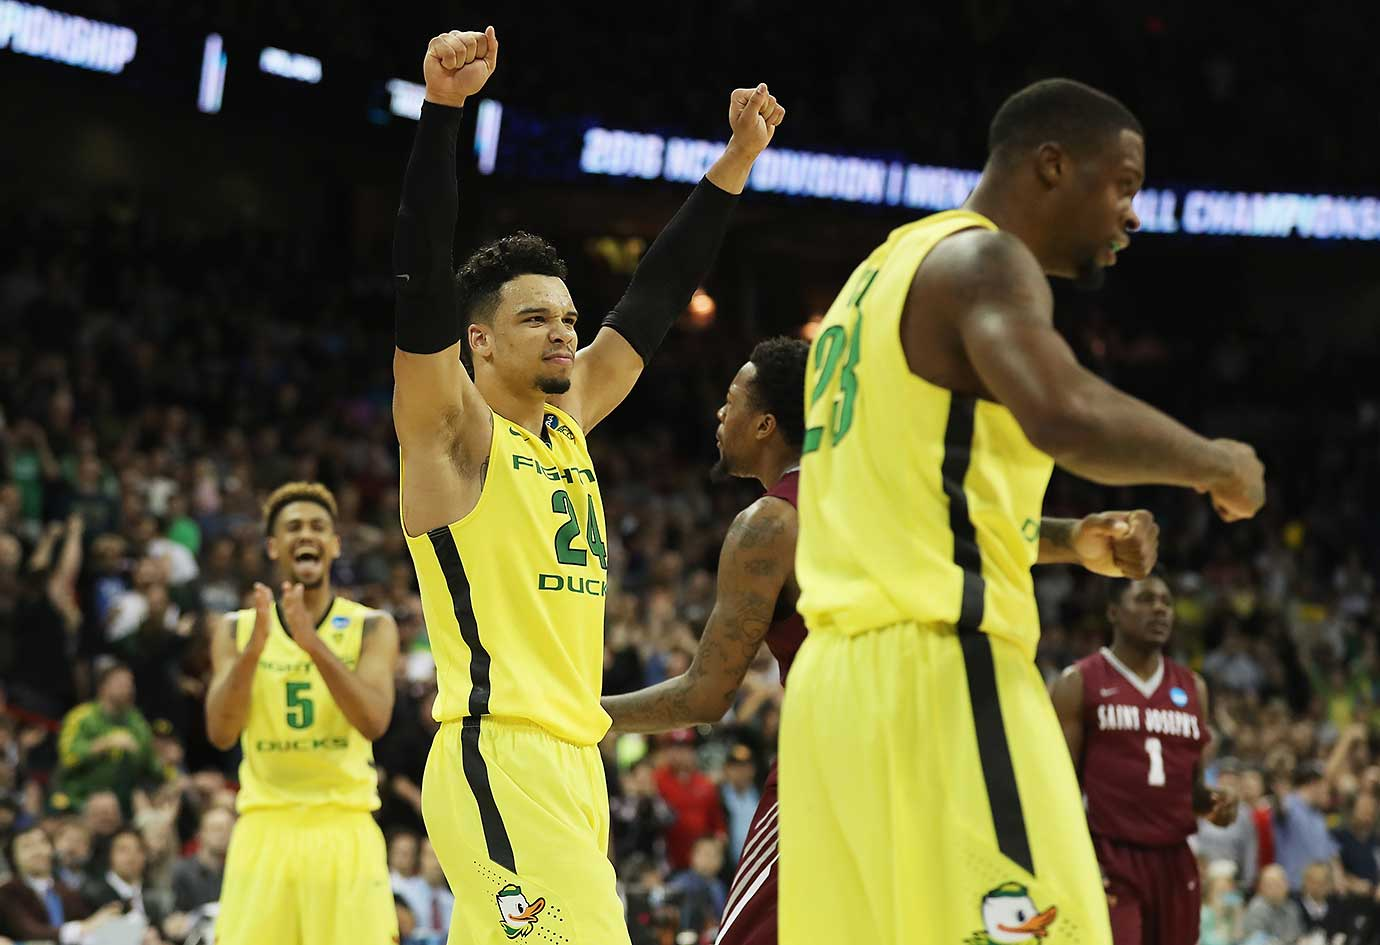 Dillon Brooks and the Oregon Ducks are moving on to the Sweet 16 after a 69-64 win over St. Joseph's.